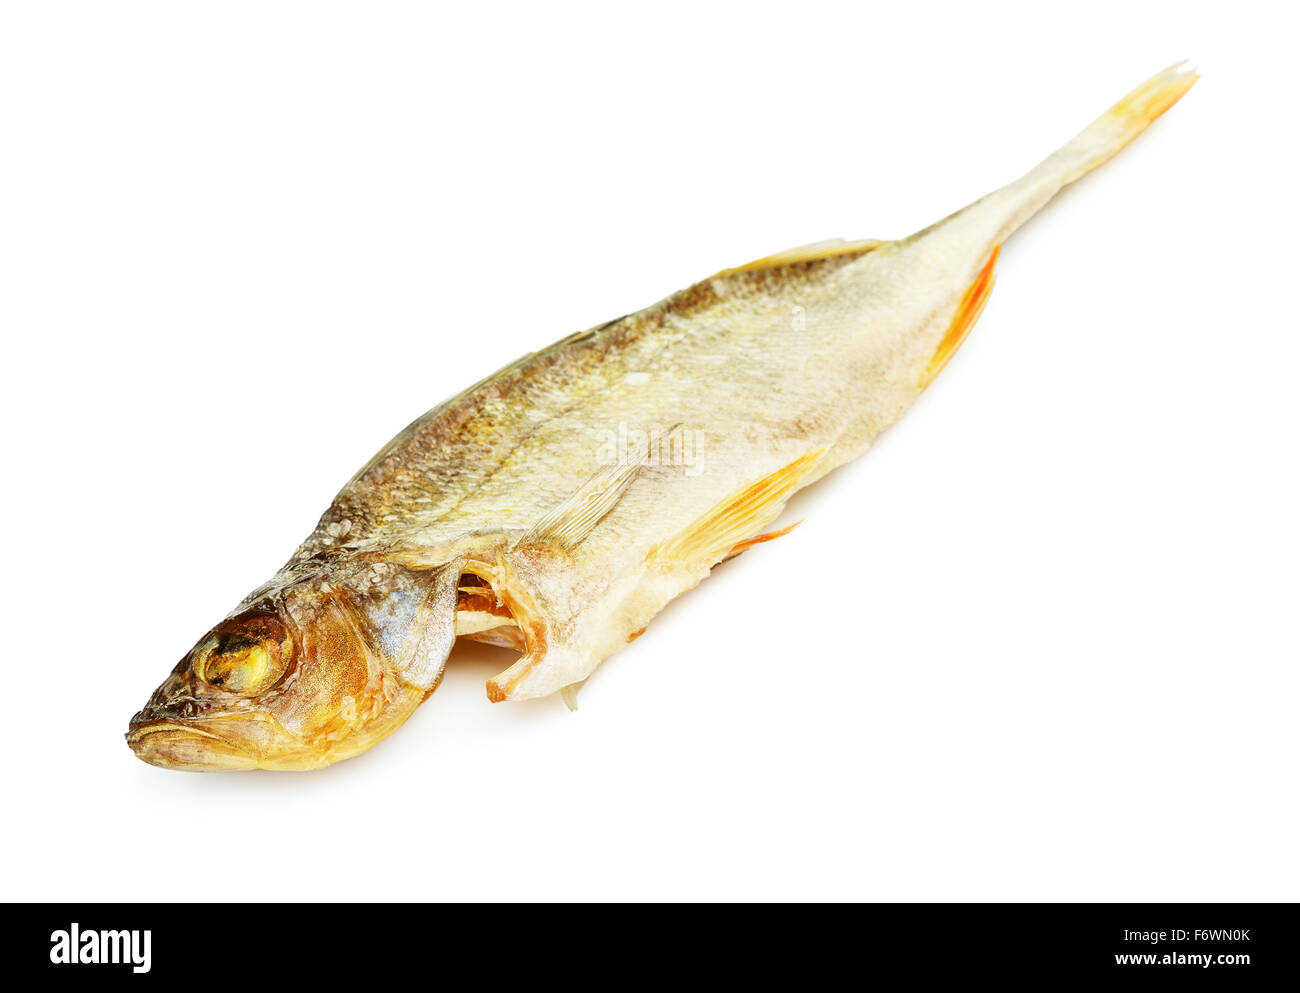 salty dried fish perch, isolated on white background - Stock Image